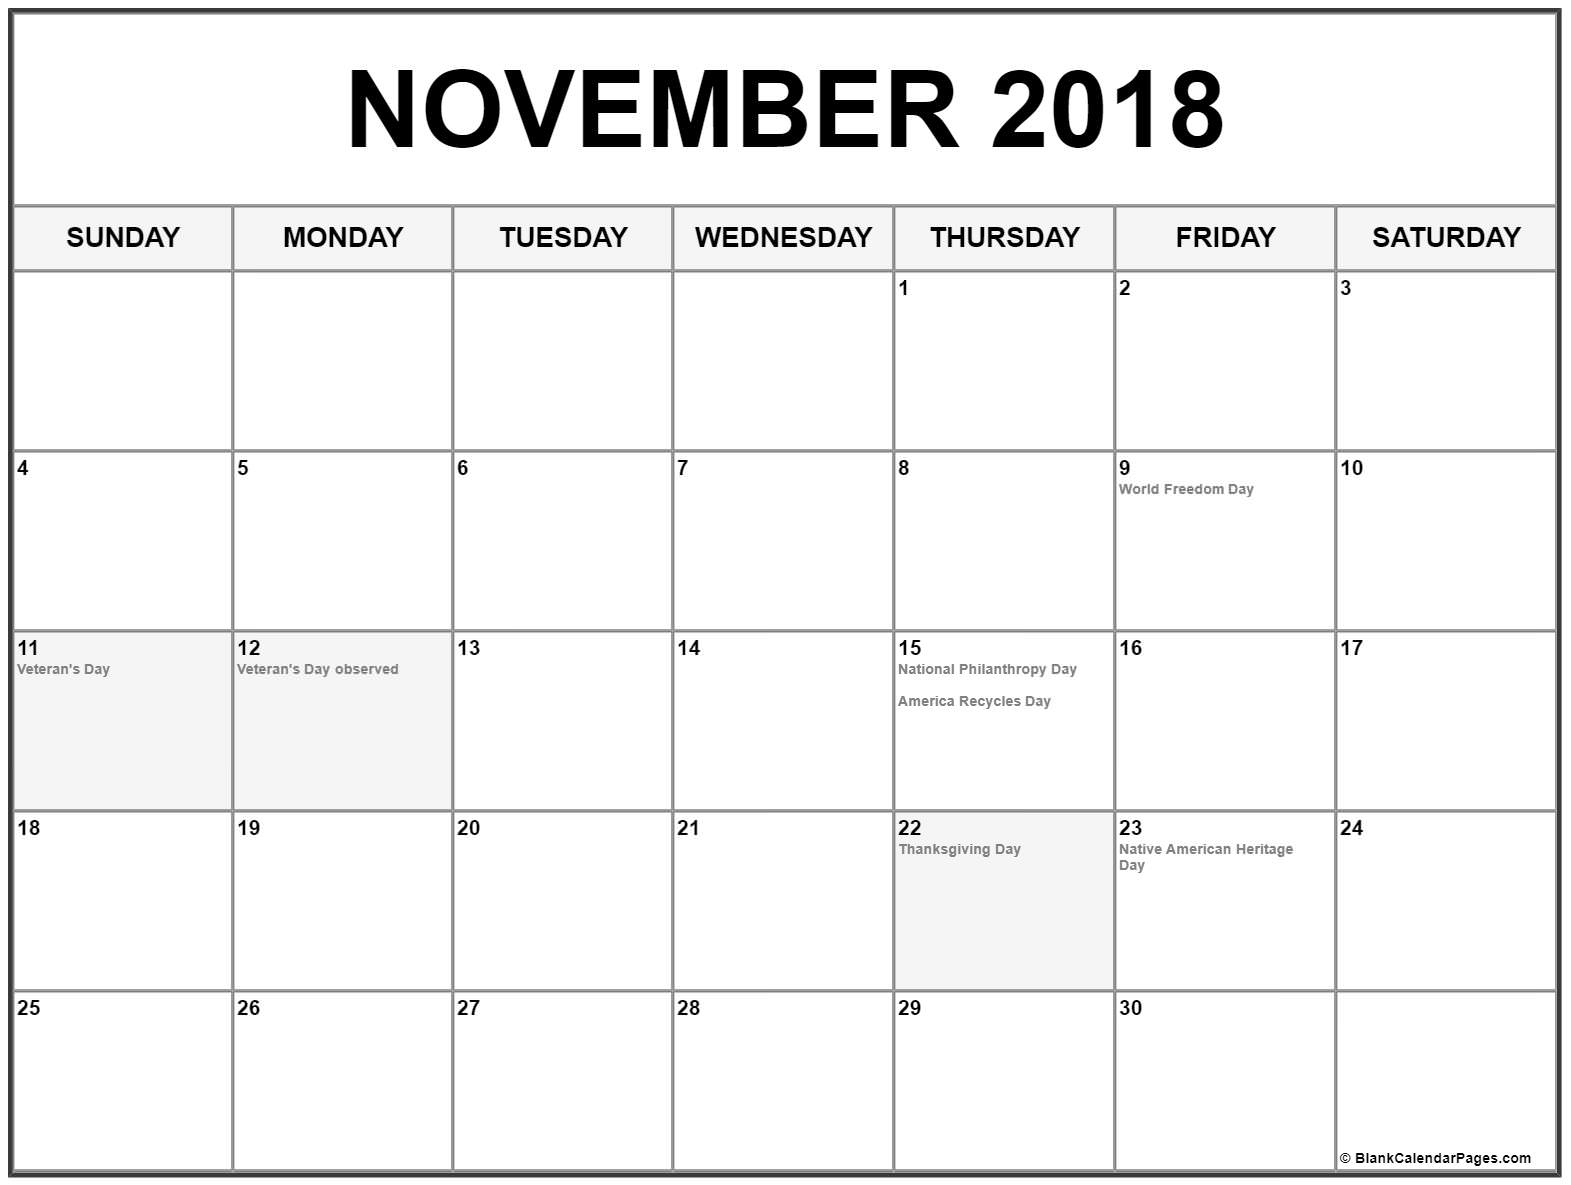 November 2018 Calendar USA Holidays